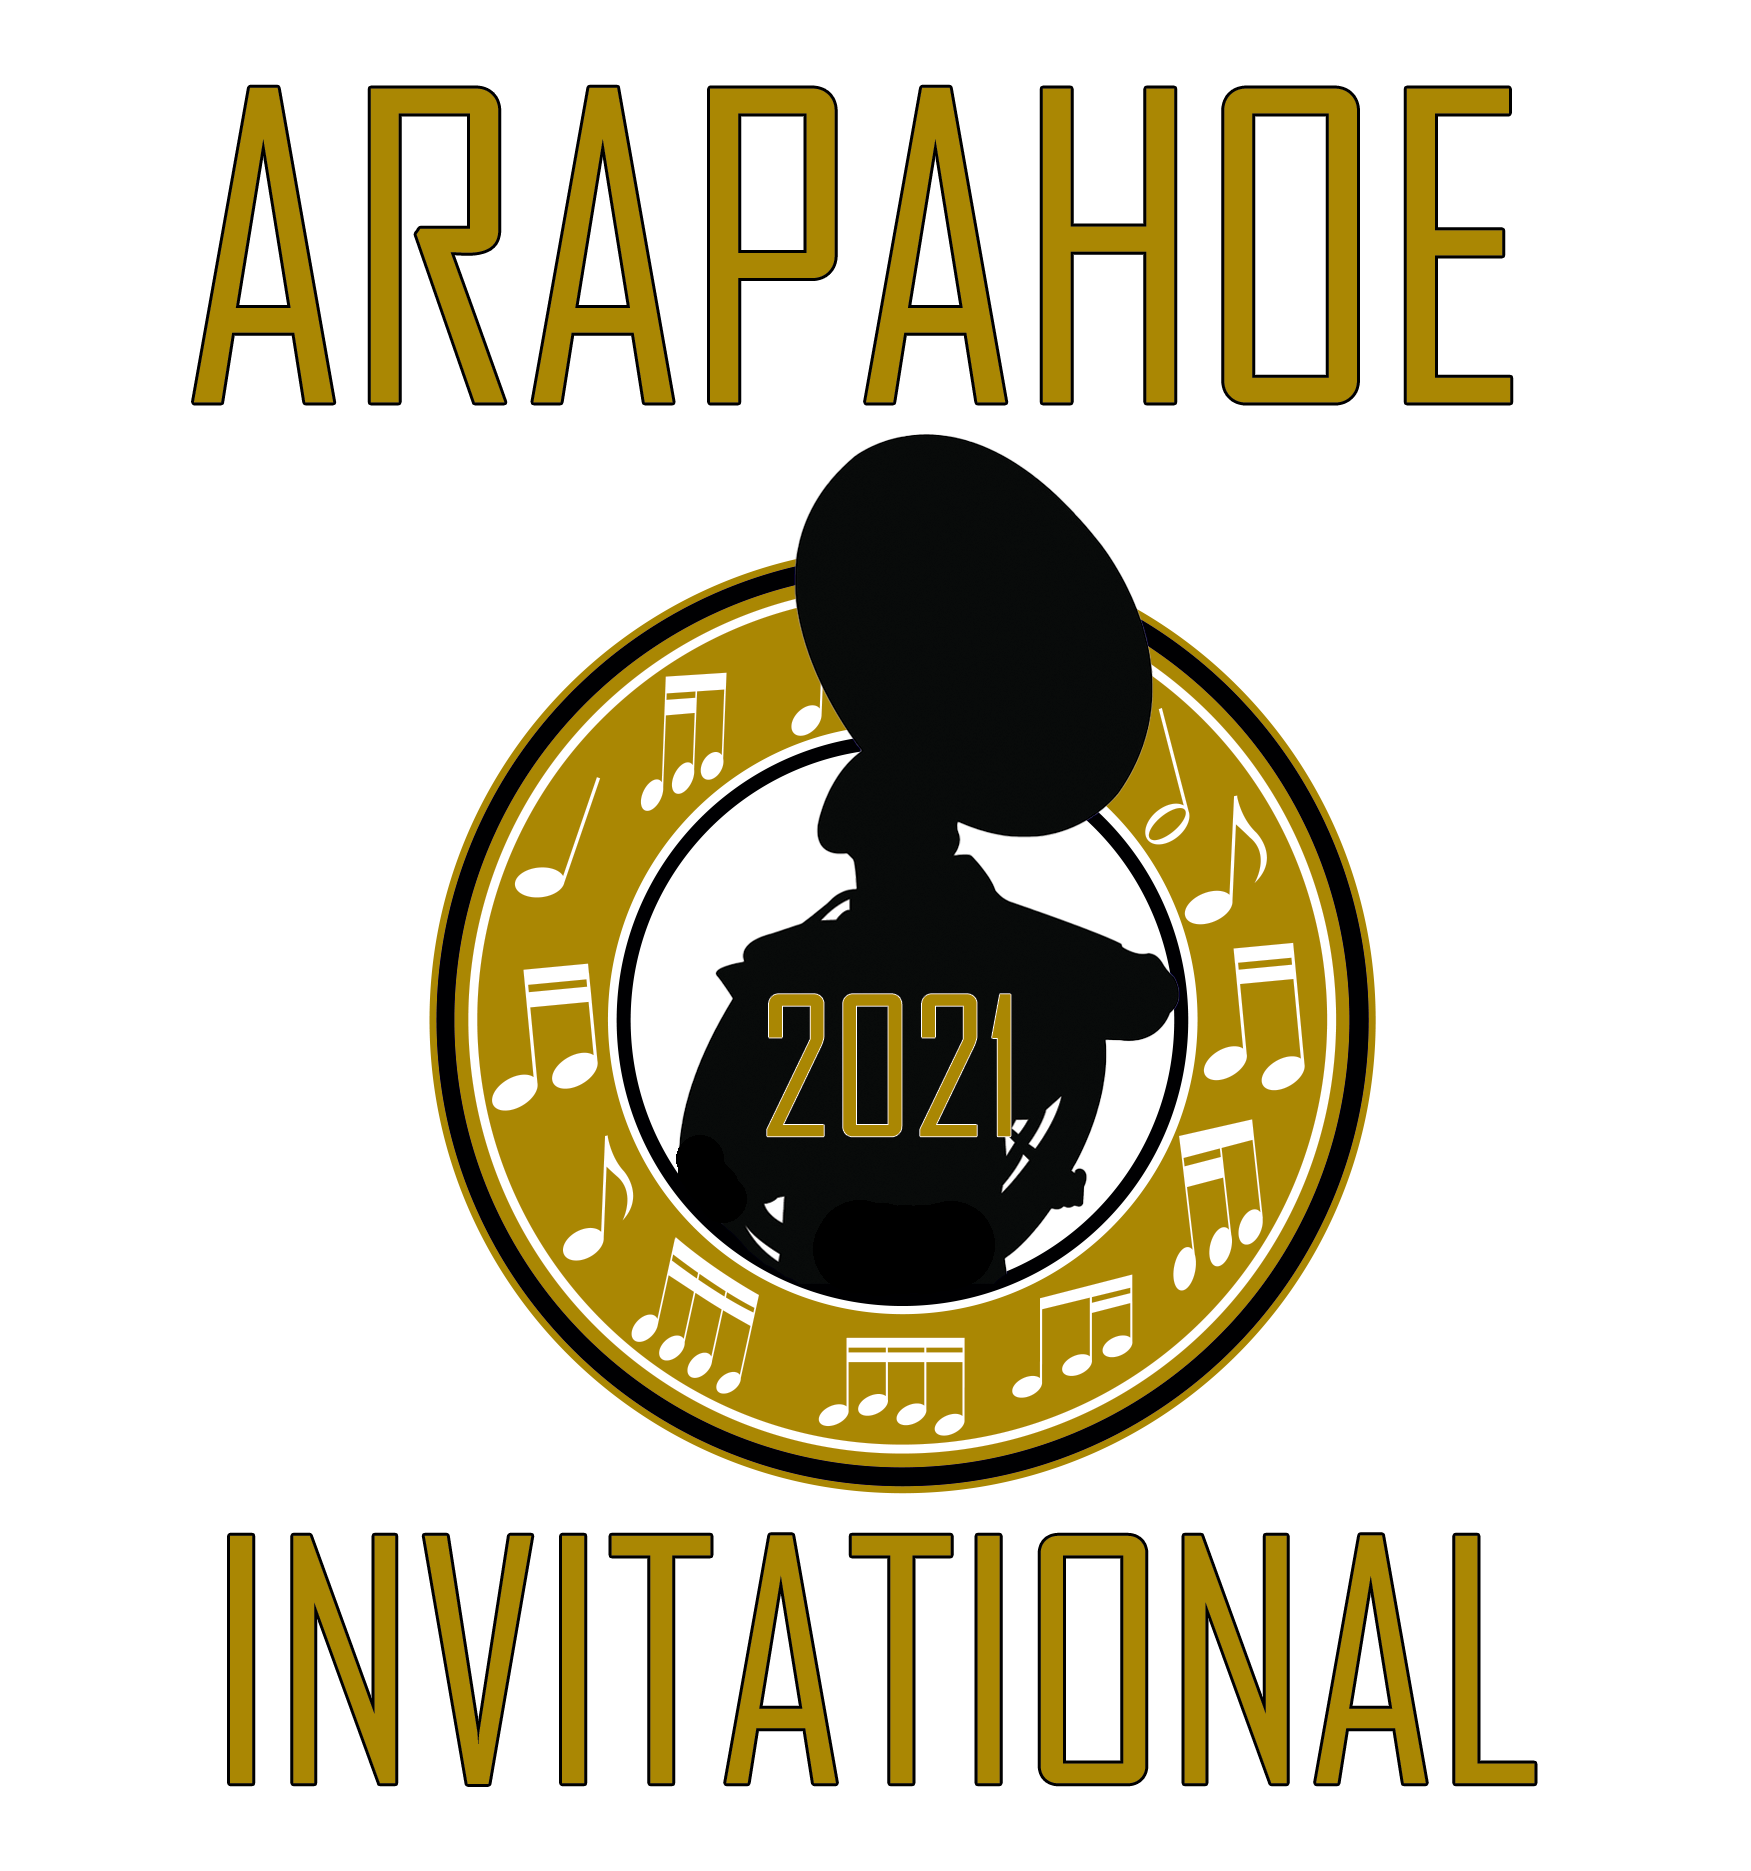 Arapahoe Invitational